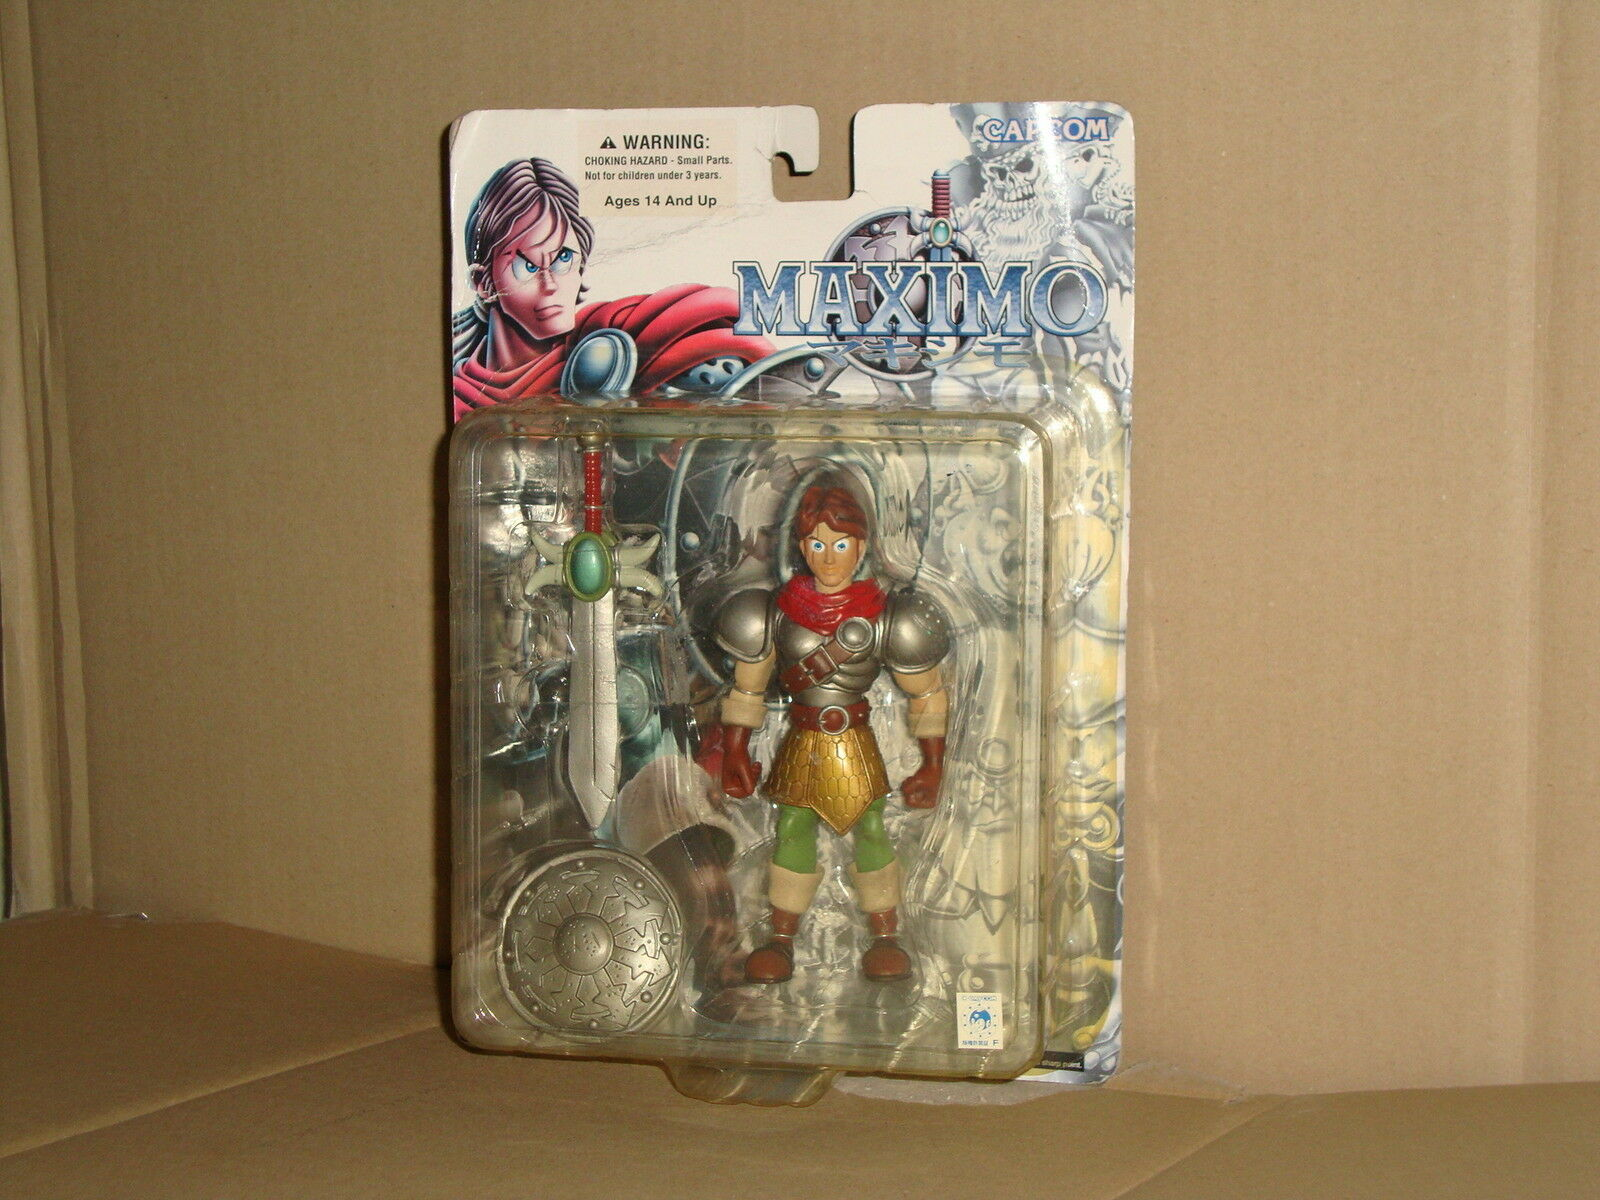 MAXIMO MAXIMO MAXIMO GHOST'N' GOBLINS ACTION FIGURE BY CAPCOM - YAMATO IN 2001 NEW IN BOX 2700ed